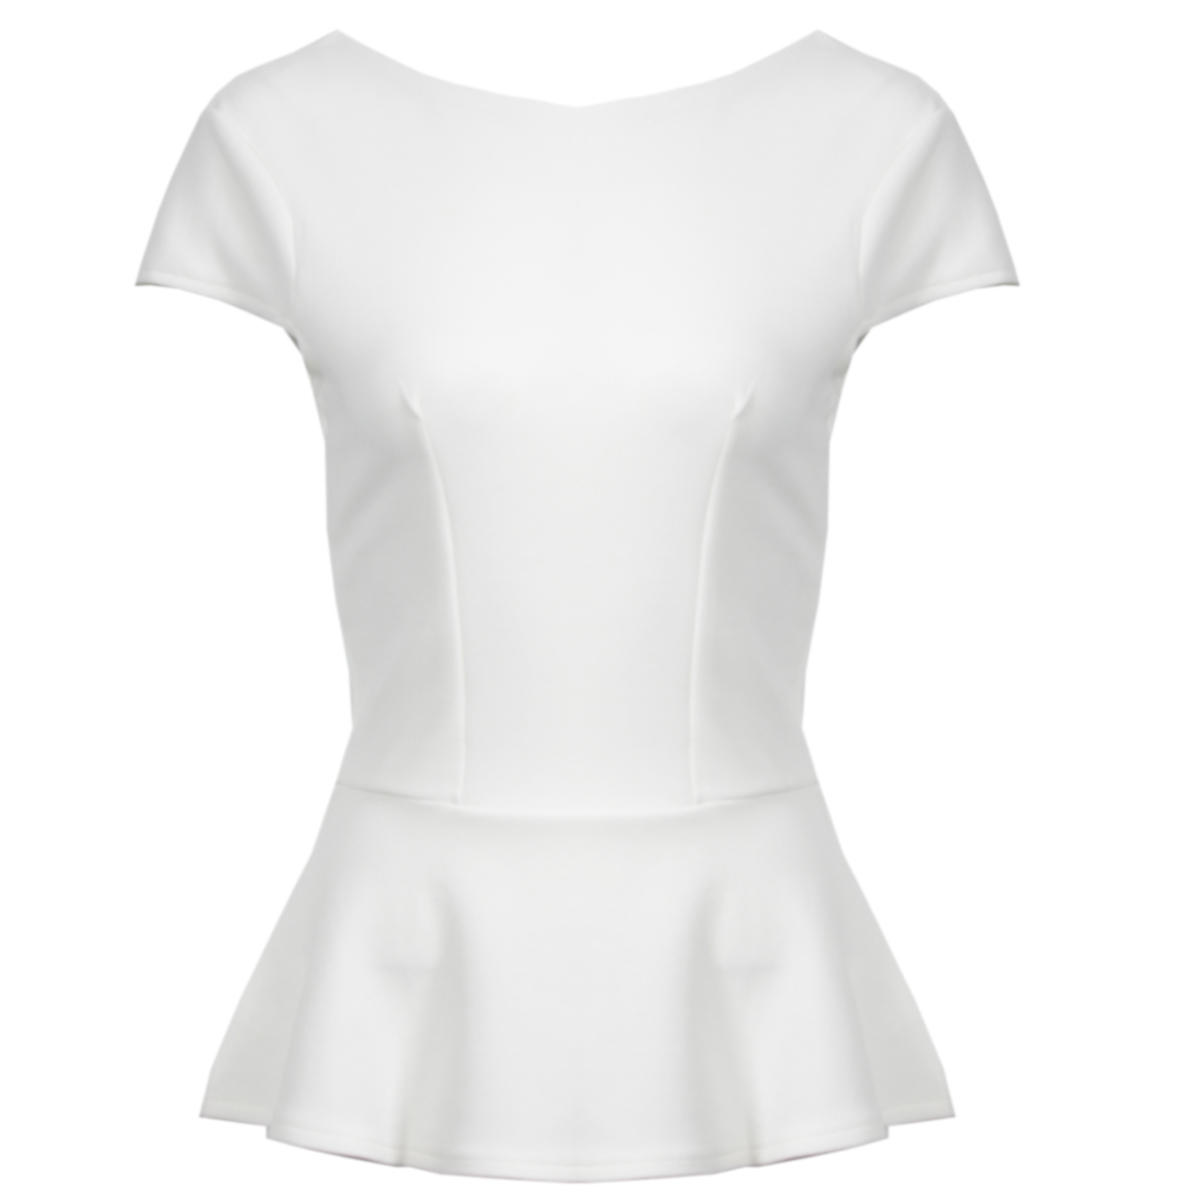 White Short Sleeve Peplum Top Preview